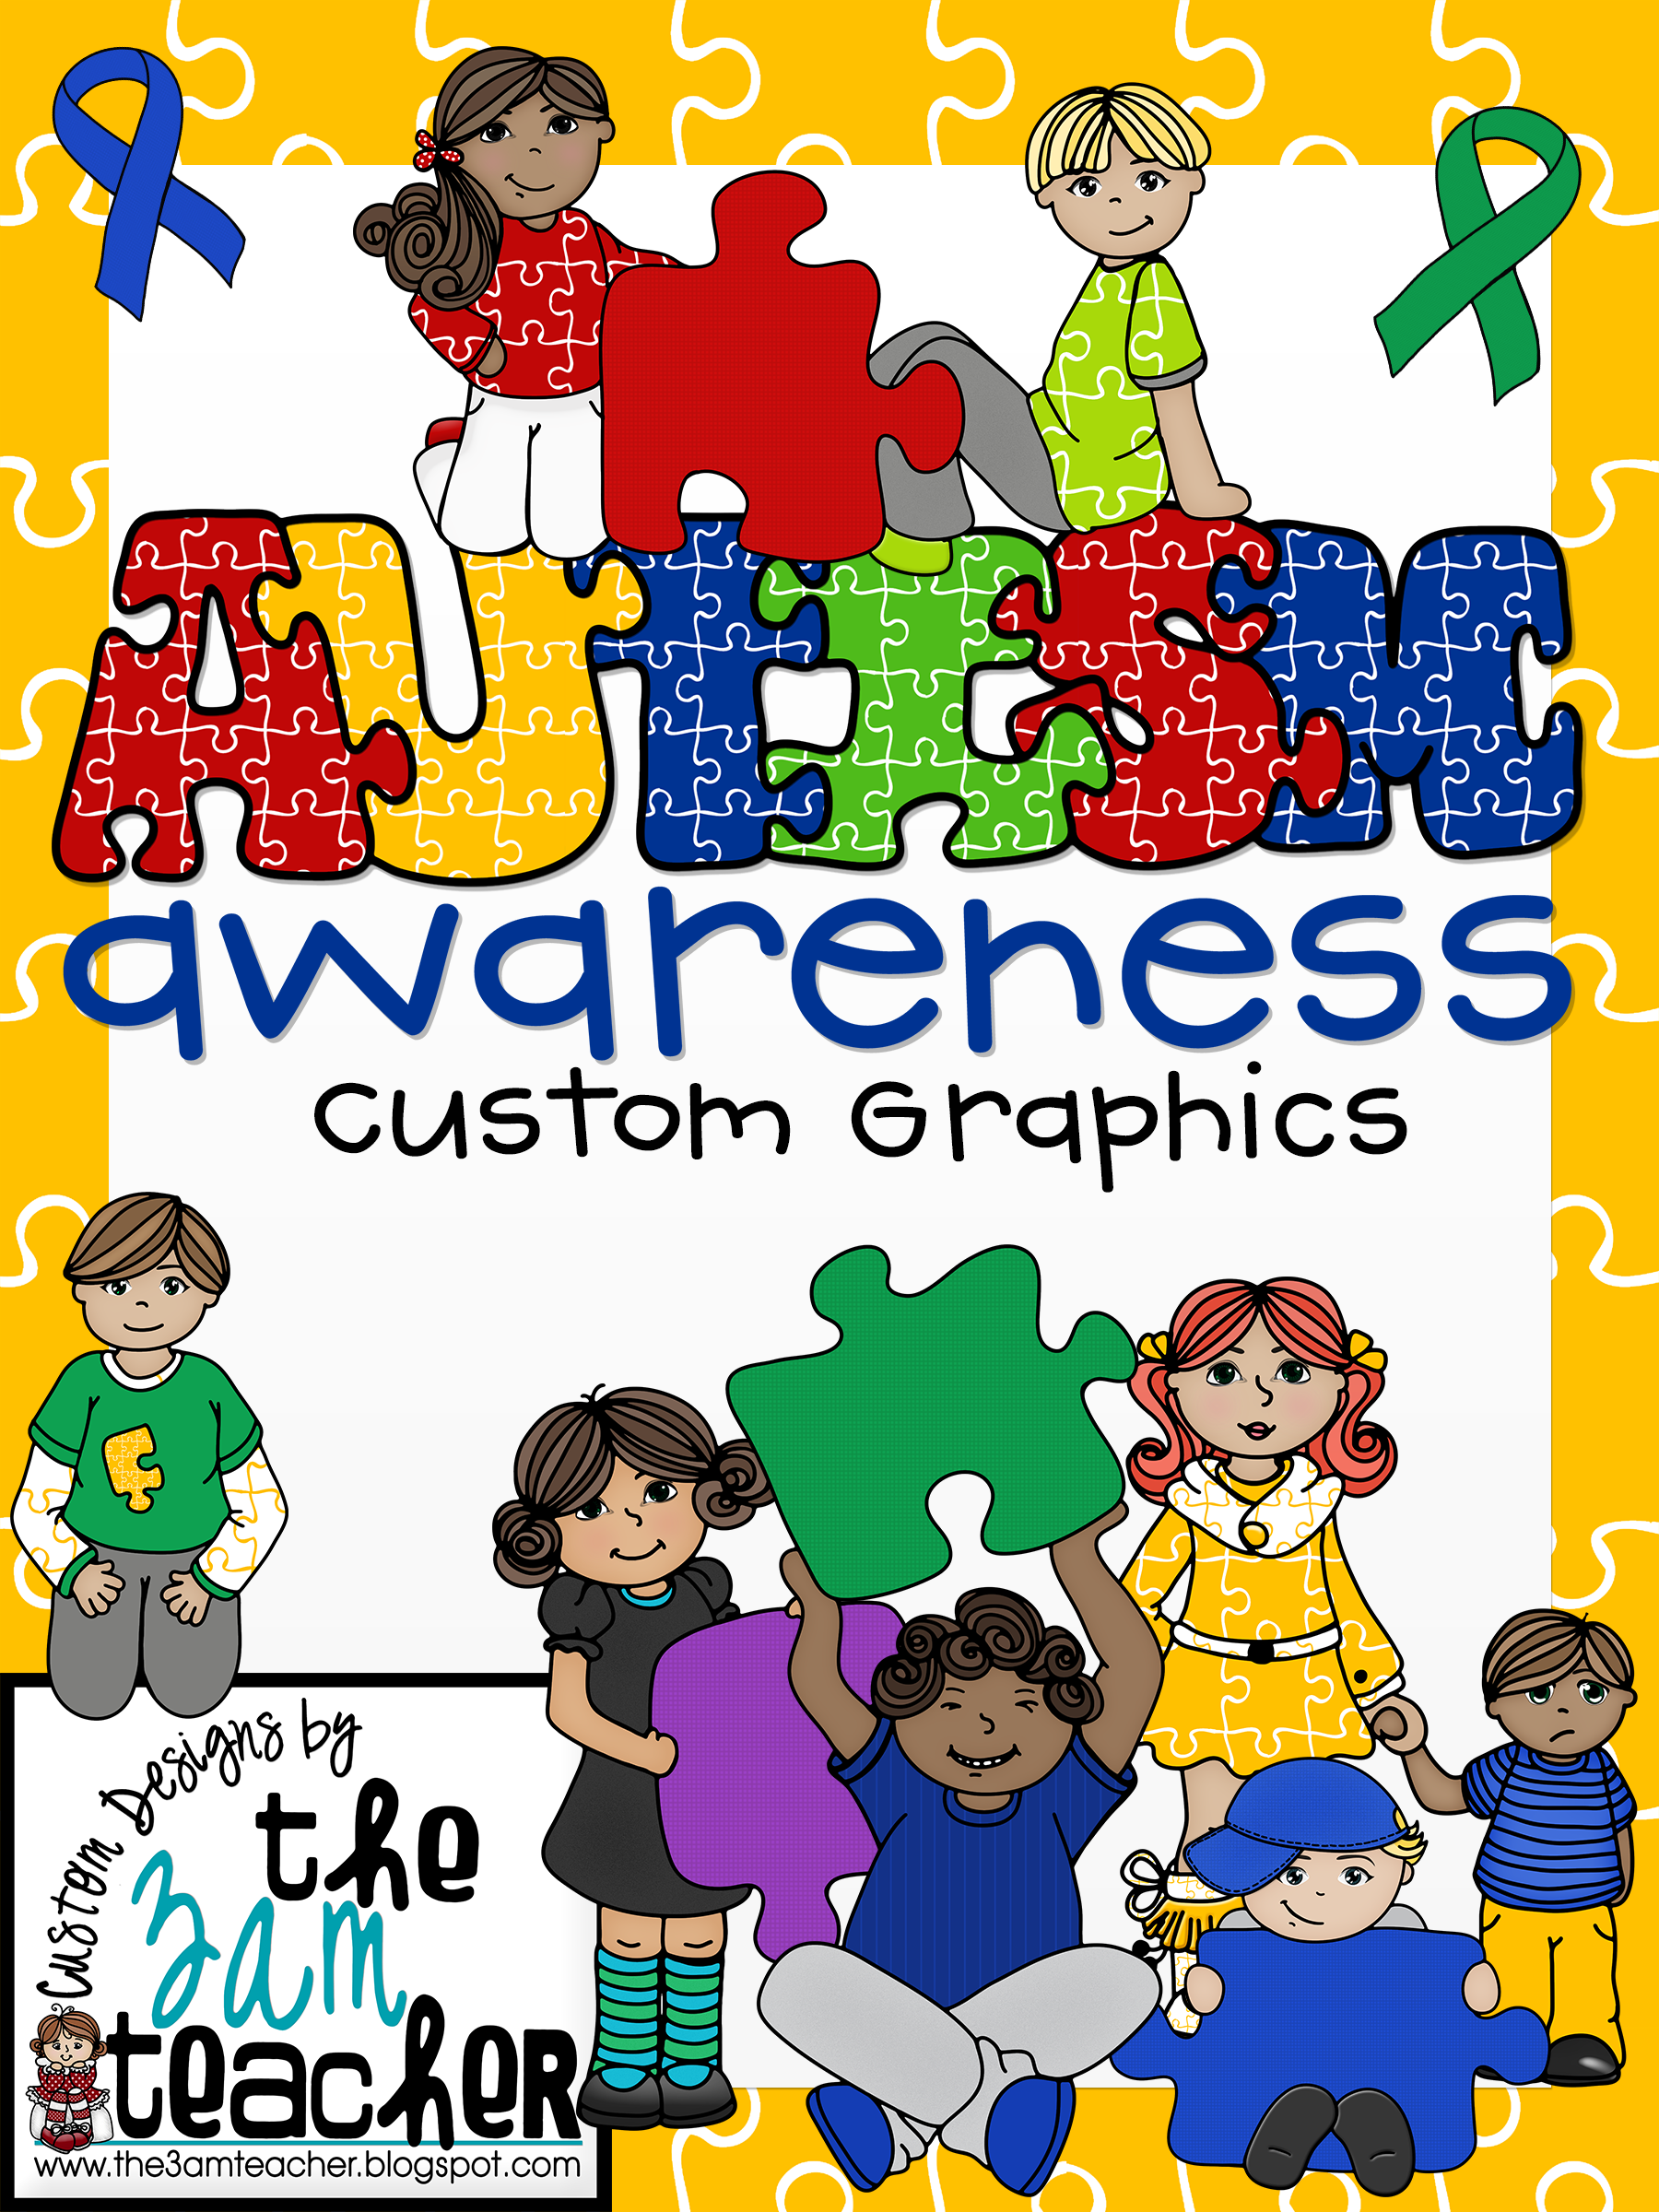 Autism awareness clipart vector freeuse library Autism Awareness Clip Art/Graphics: Set 2 vector freeuse library